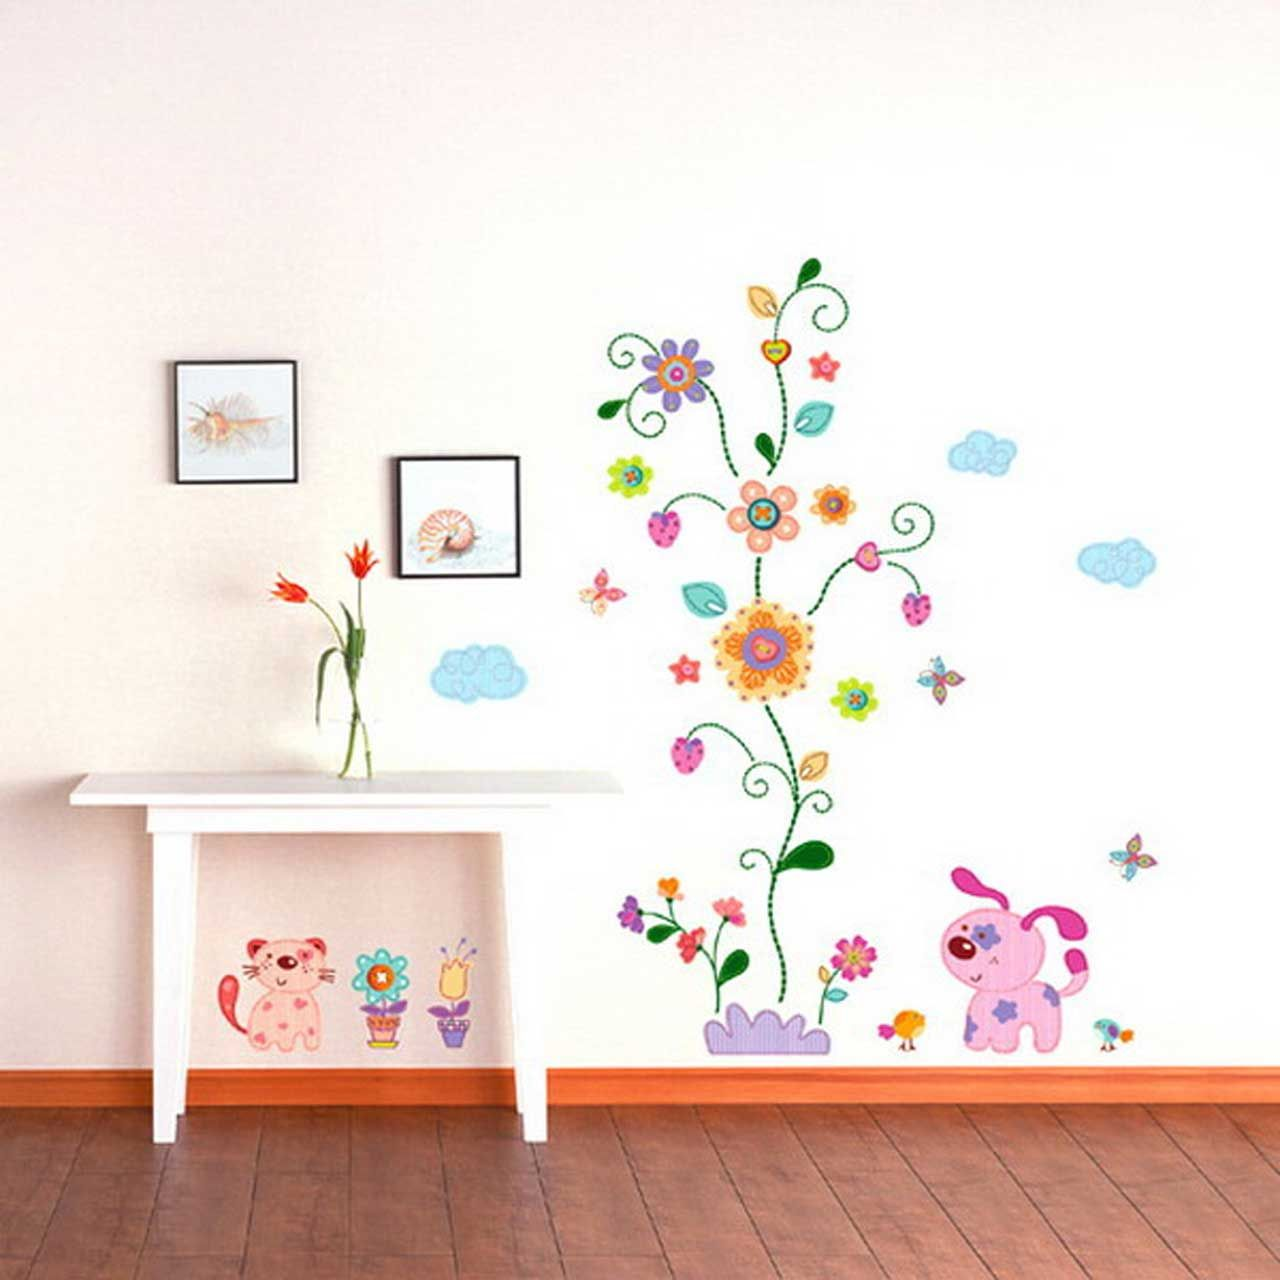 Beautiful kids room decorating design ideas with creative removable flower wall art kids room - Kids room decoration ...